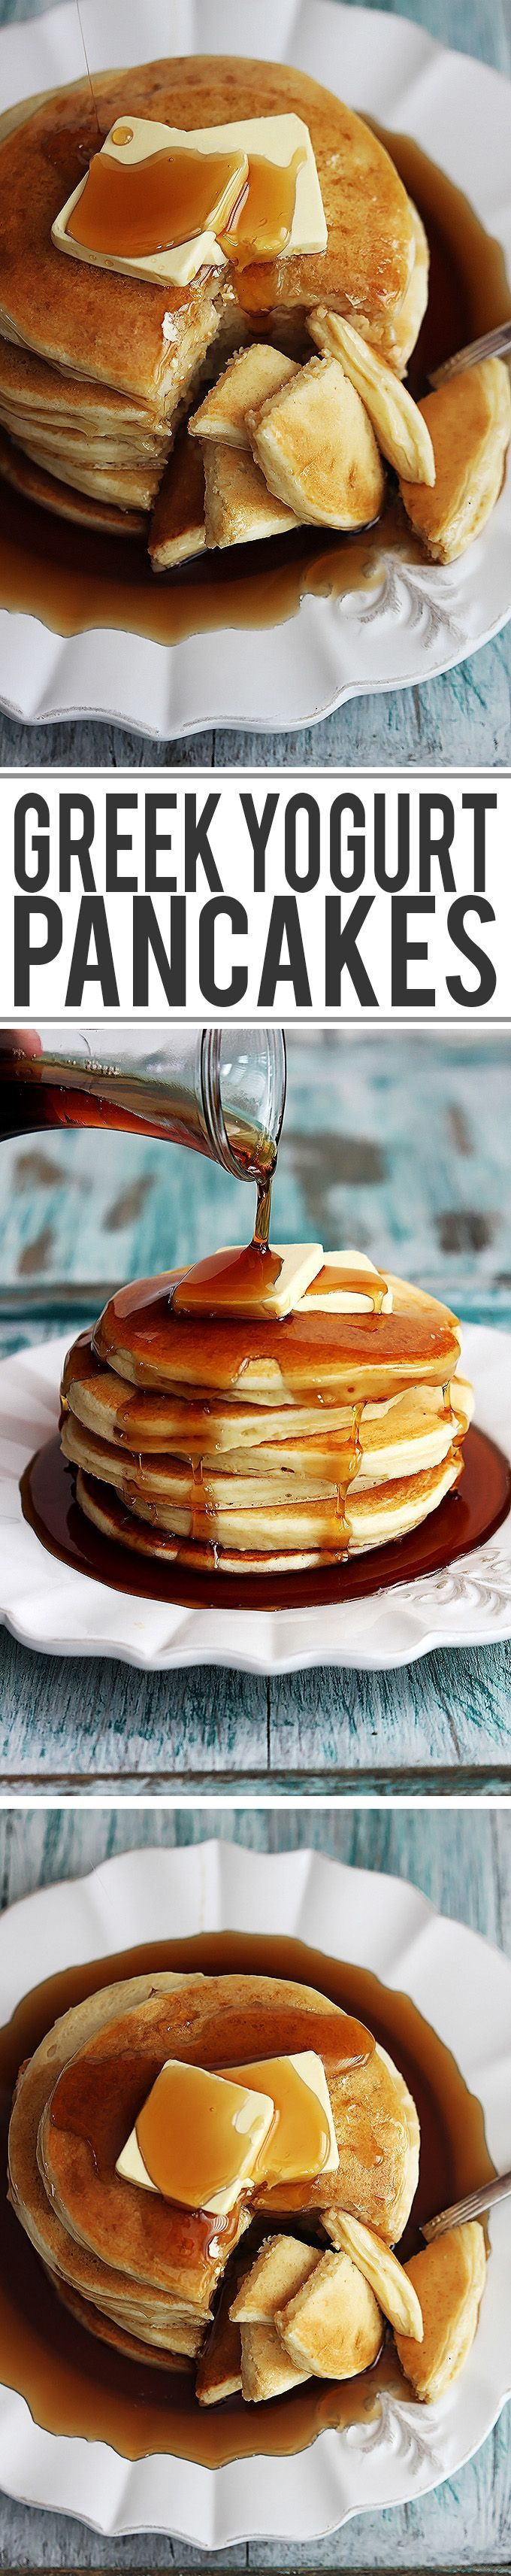 Easy and fluffy, healthy greek yogurt pancakes you can whip up in a hurry!